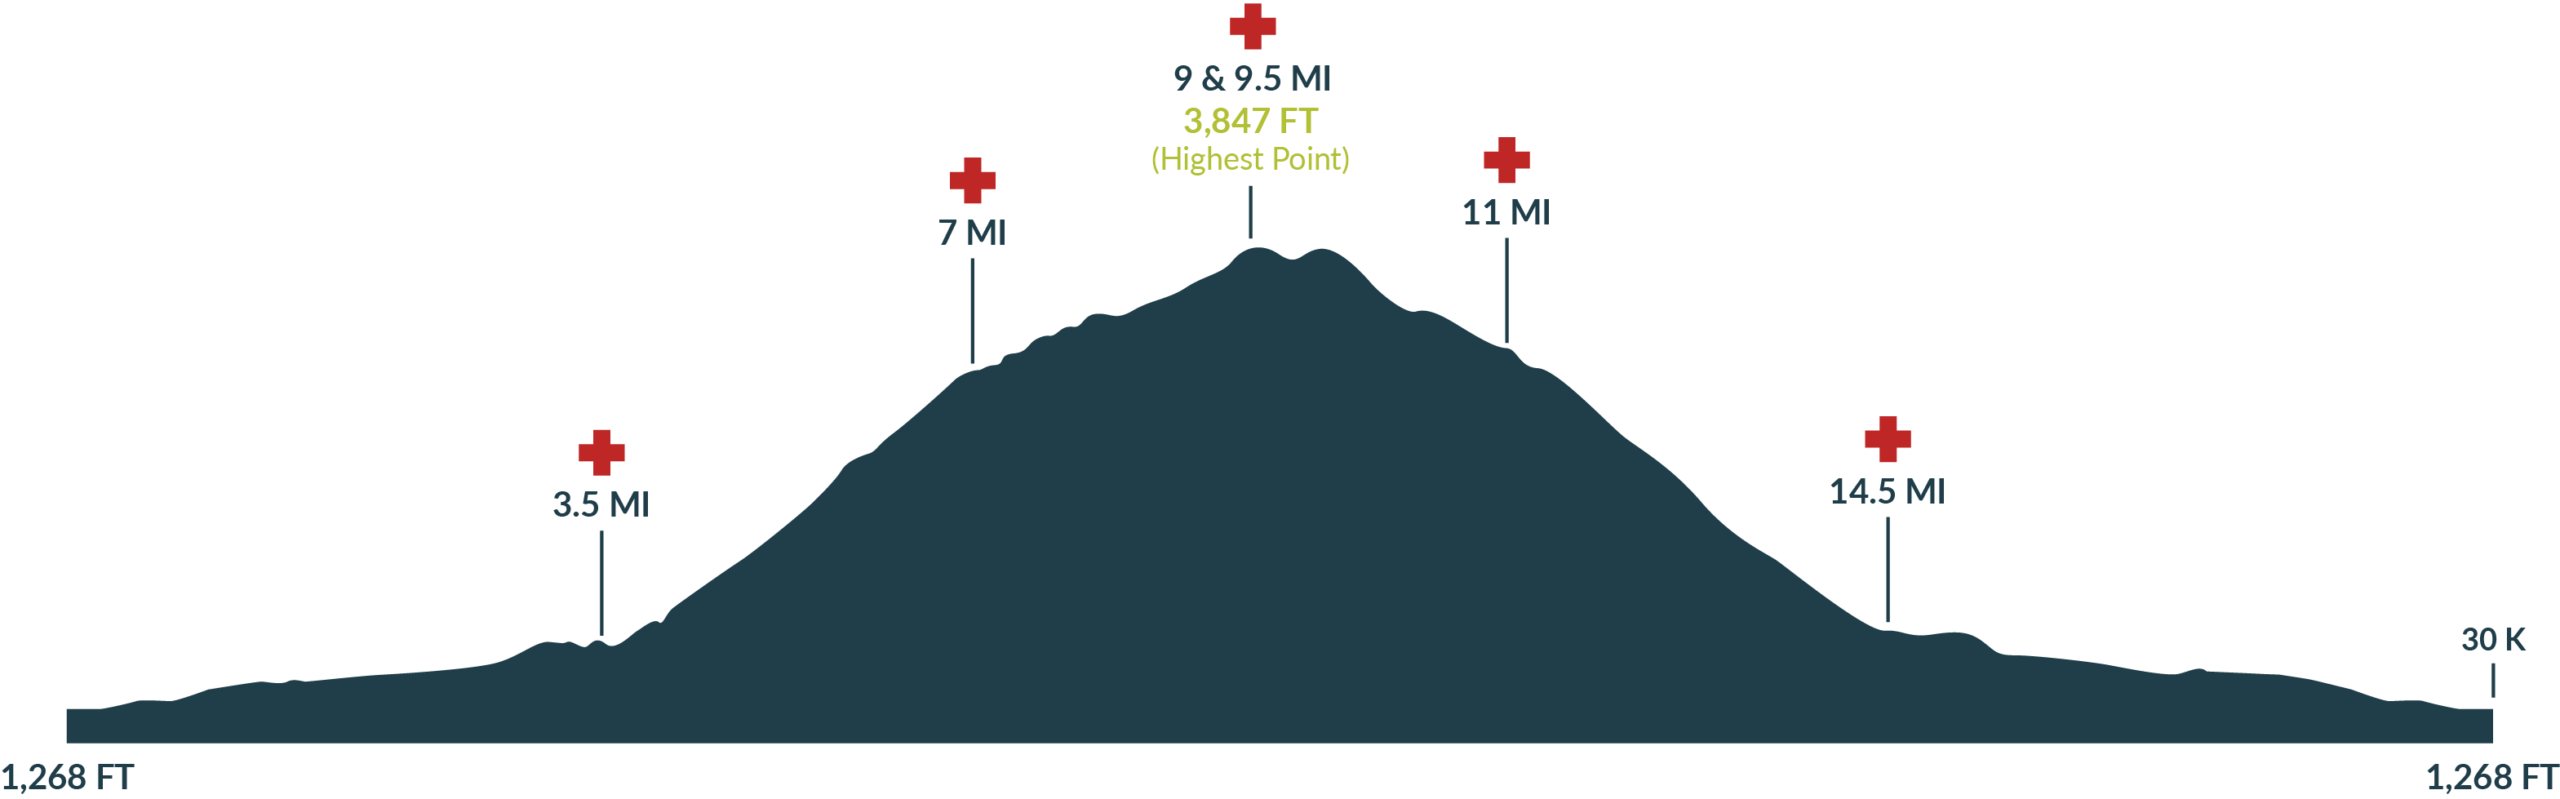 Oakridge Triple Summit Challenge Dead Mountain Race Profile 2020